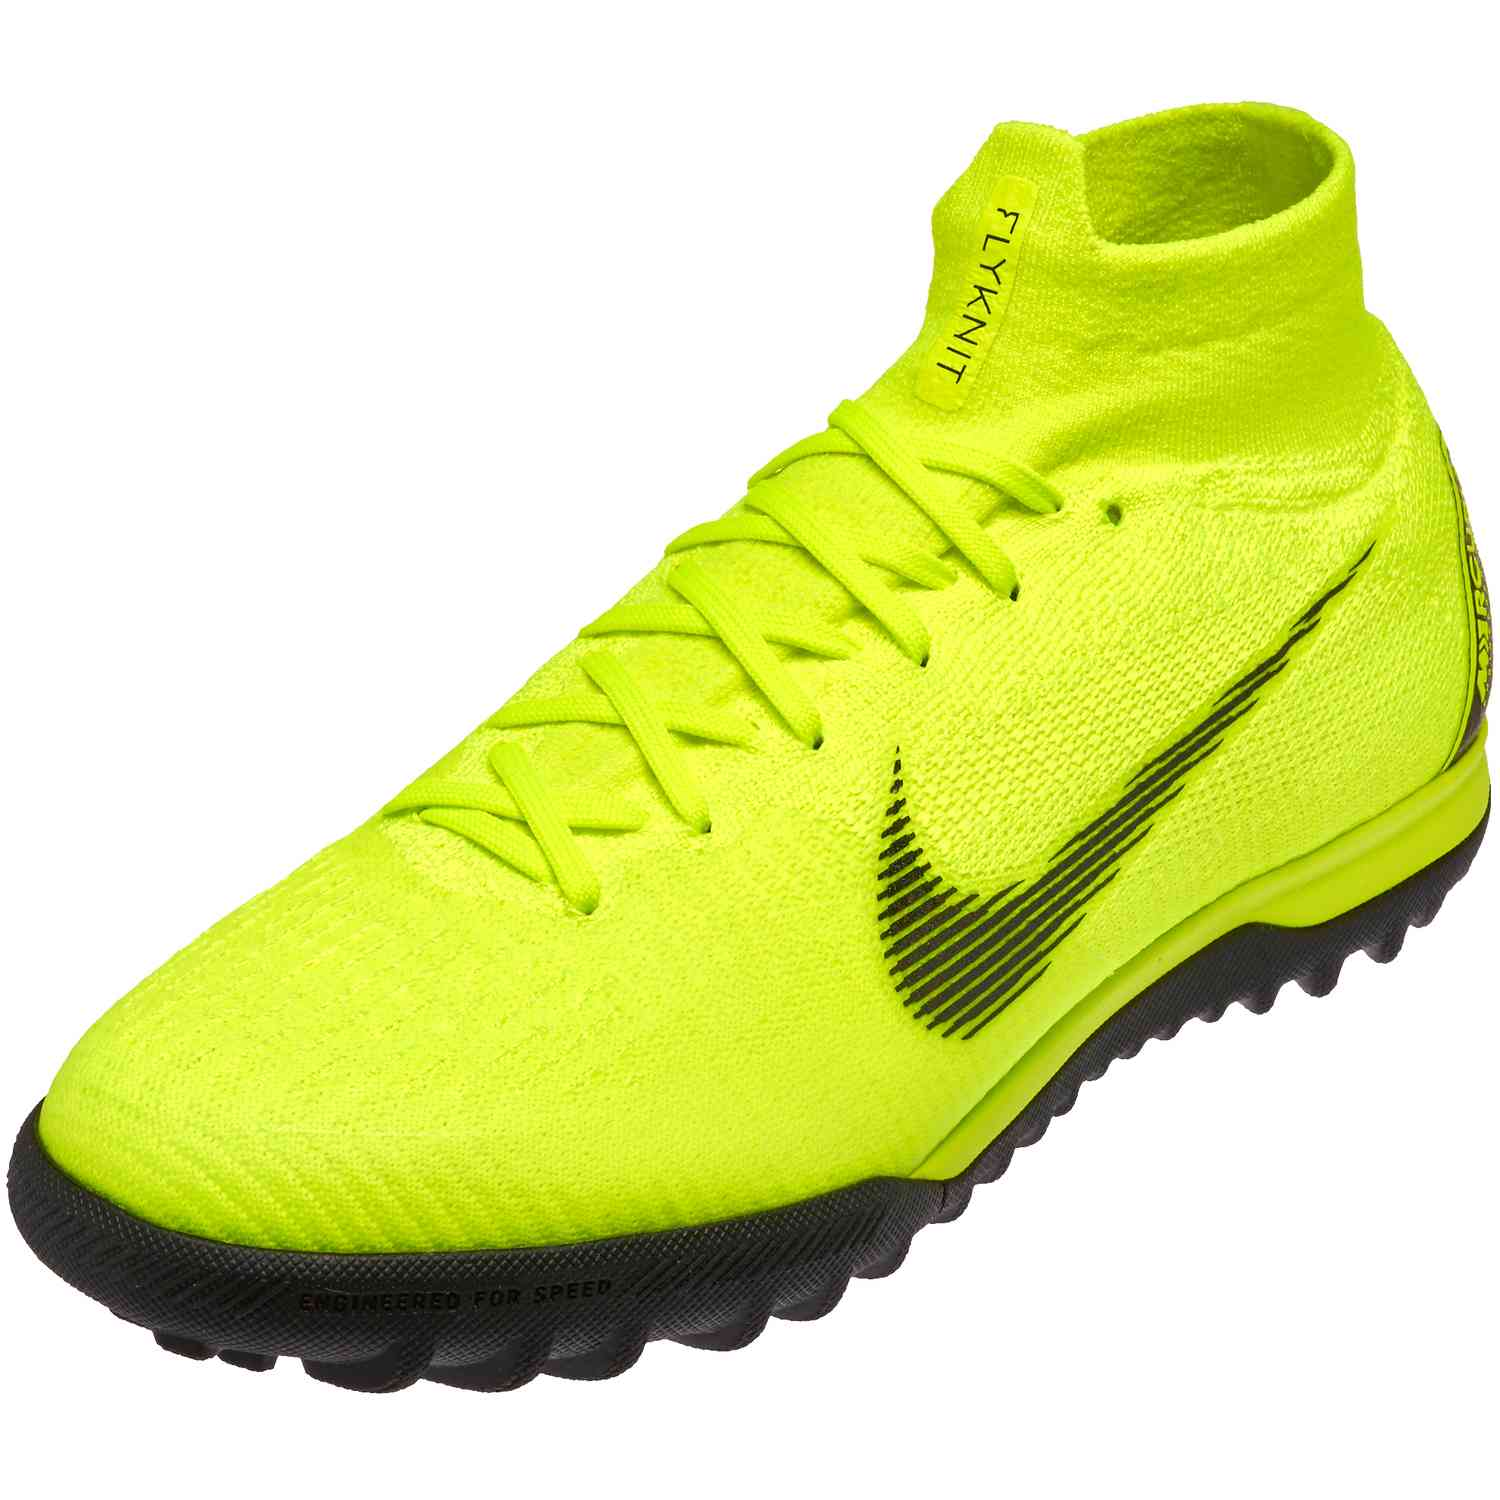 Panorama Nublado Alabama  Nike Mercurial SuperflyX 6 Elite TF - Volt/Black - SoccerPro